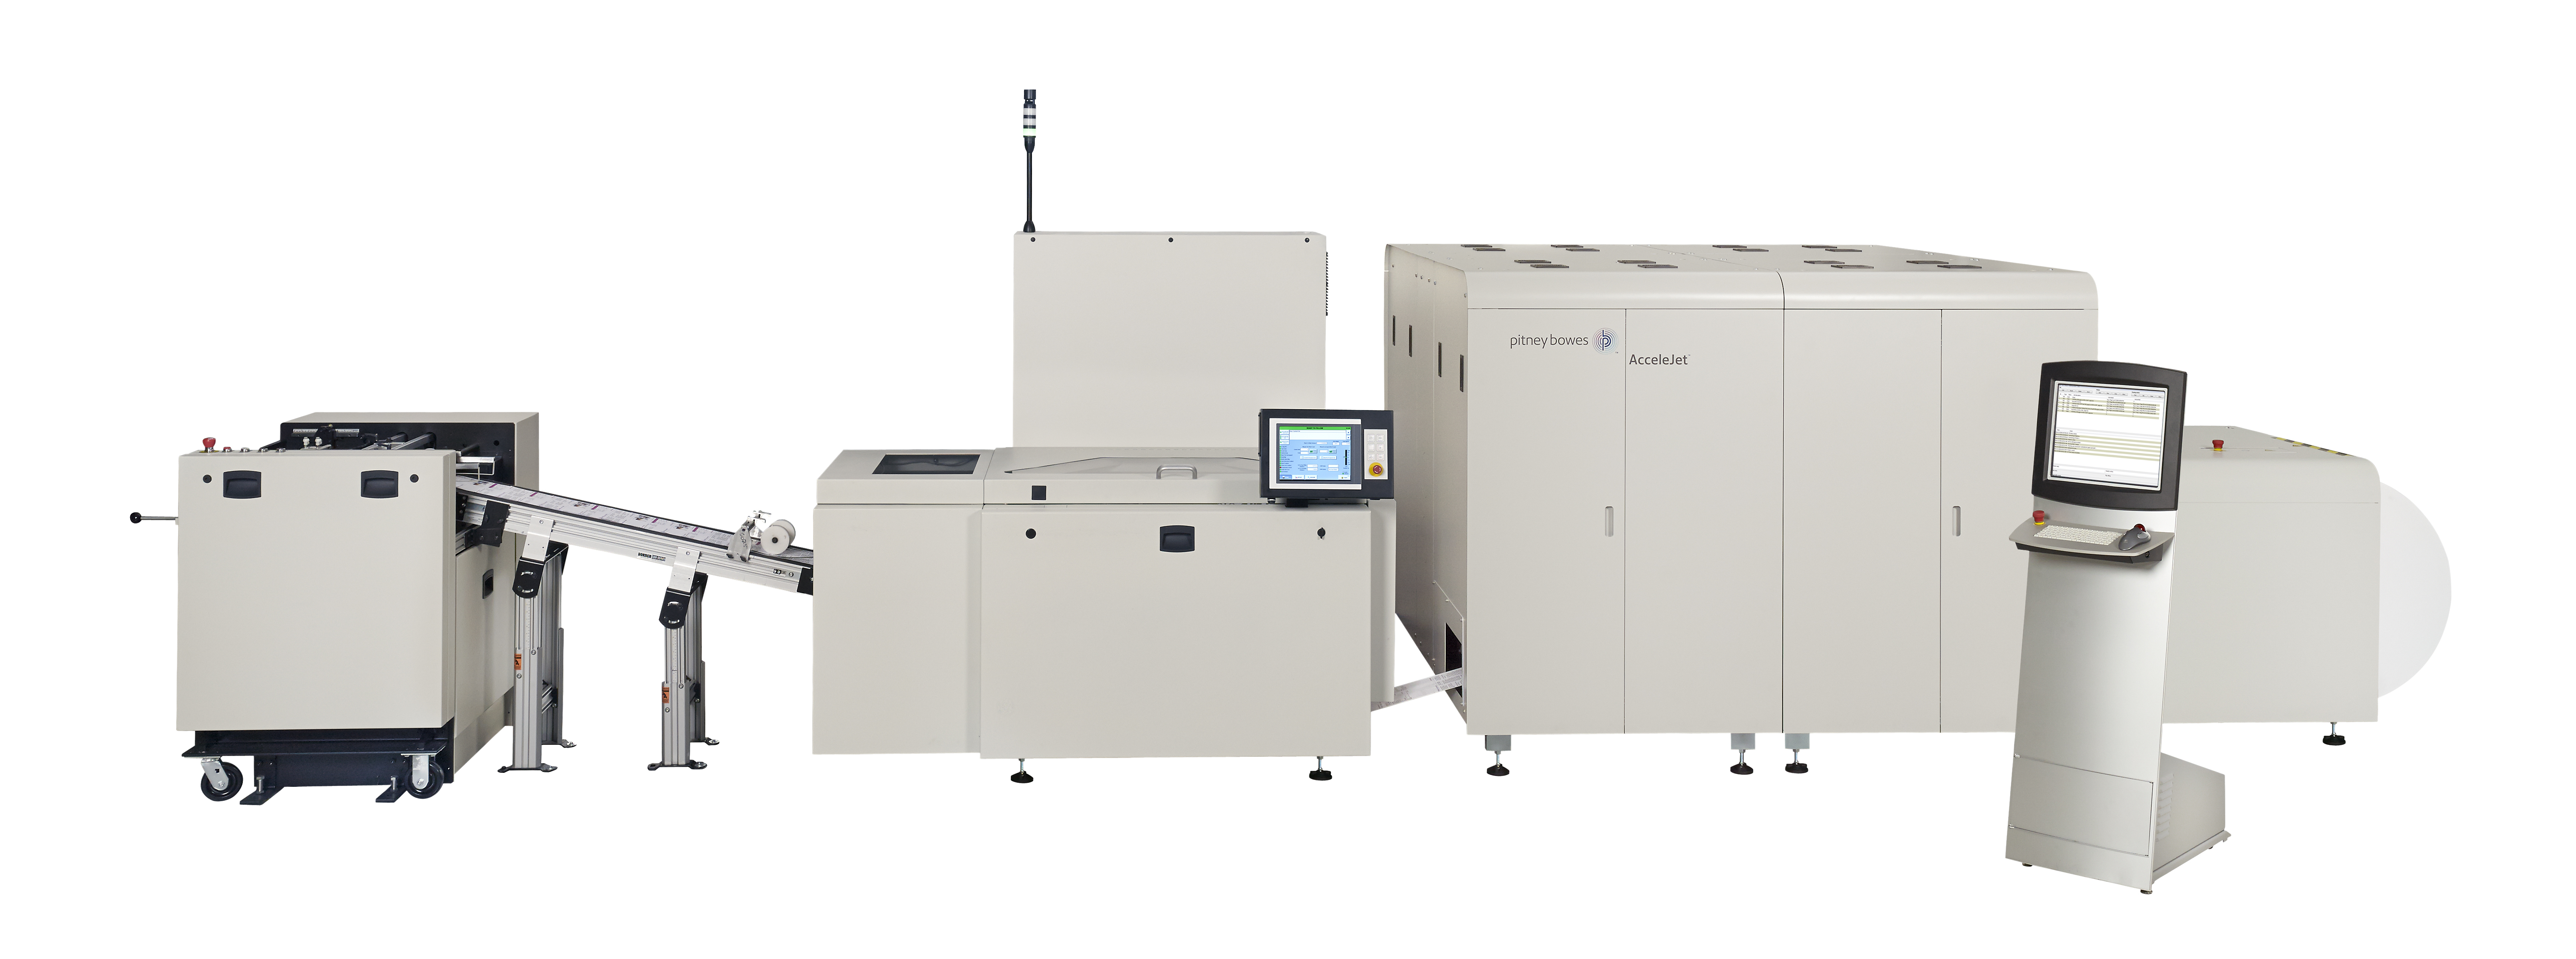 Billing Software Provider AVR of Houston, Texas Expands Print Operation with Pitney Bowes AcceleJet Printing and Finishing System (Photo: Business Wire)